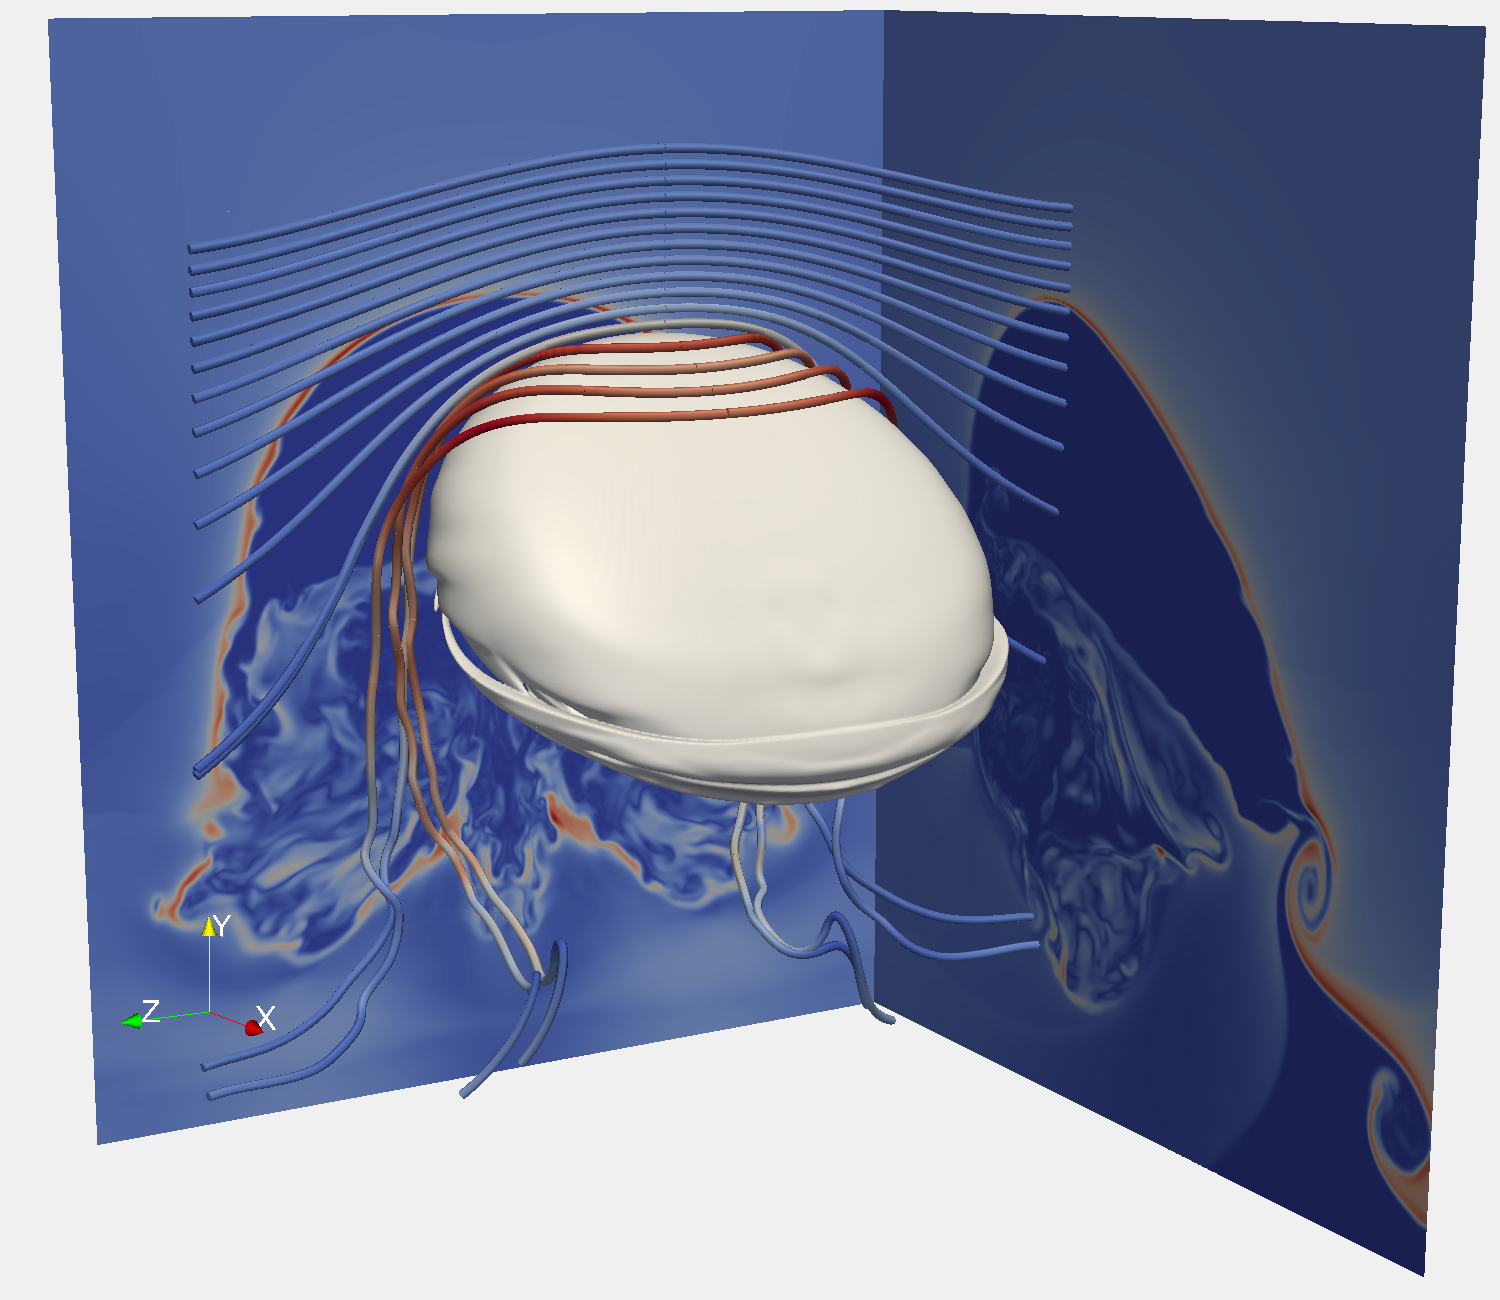 Magnetic draping in a high-resolution magneto-hydrodynamiocs   simulation. As the galaxy moves upwards through a weakly magnetized medium a   sheath of strong magnetic field is draped around it (Pfrommer & Dursi 2010).